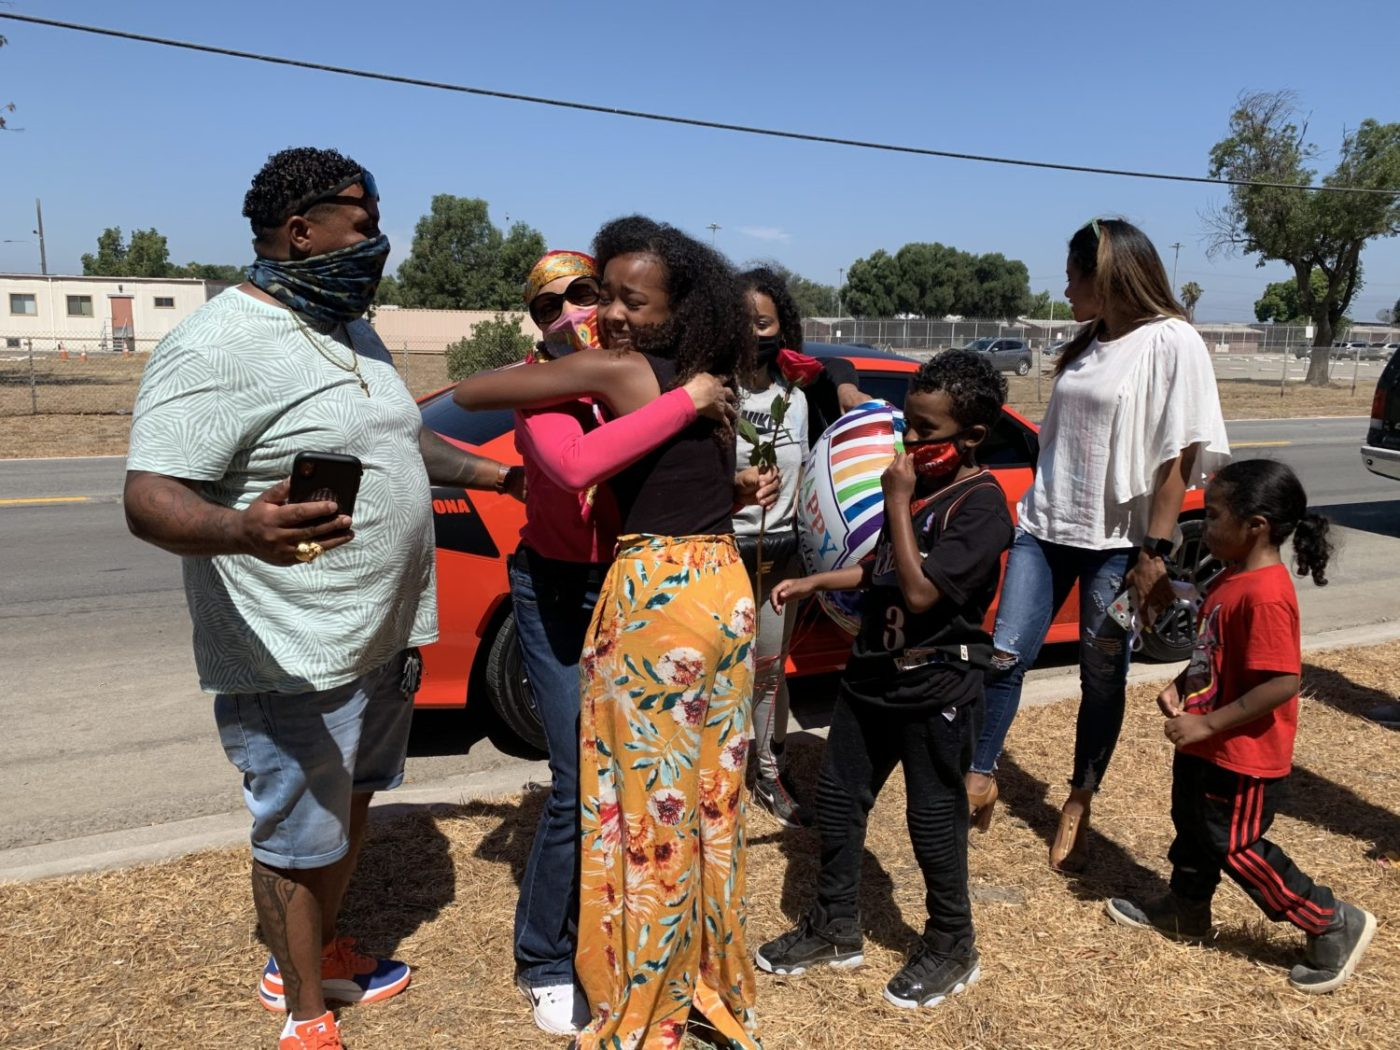 Patricia-Wright-released-from-prison-greeted-by-her-children-grandchildren-072120-1400x1050, Wanda's Picks for August 2020, Culture Currents